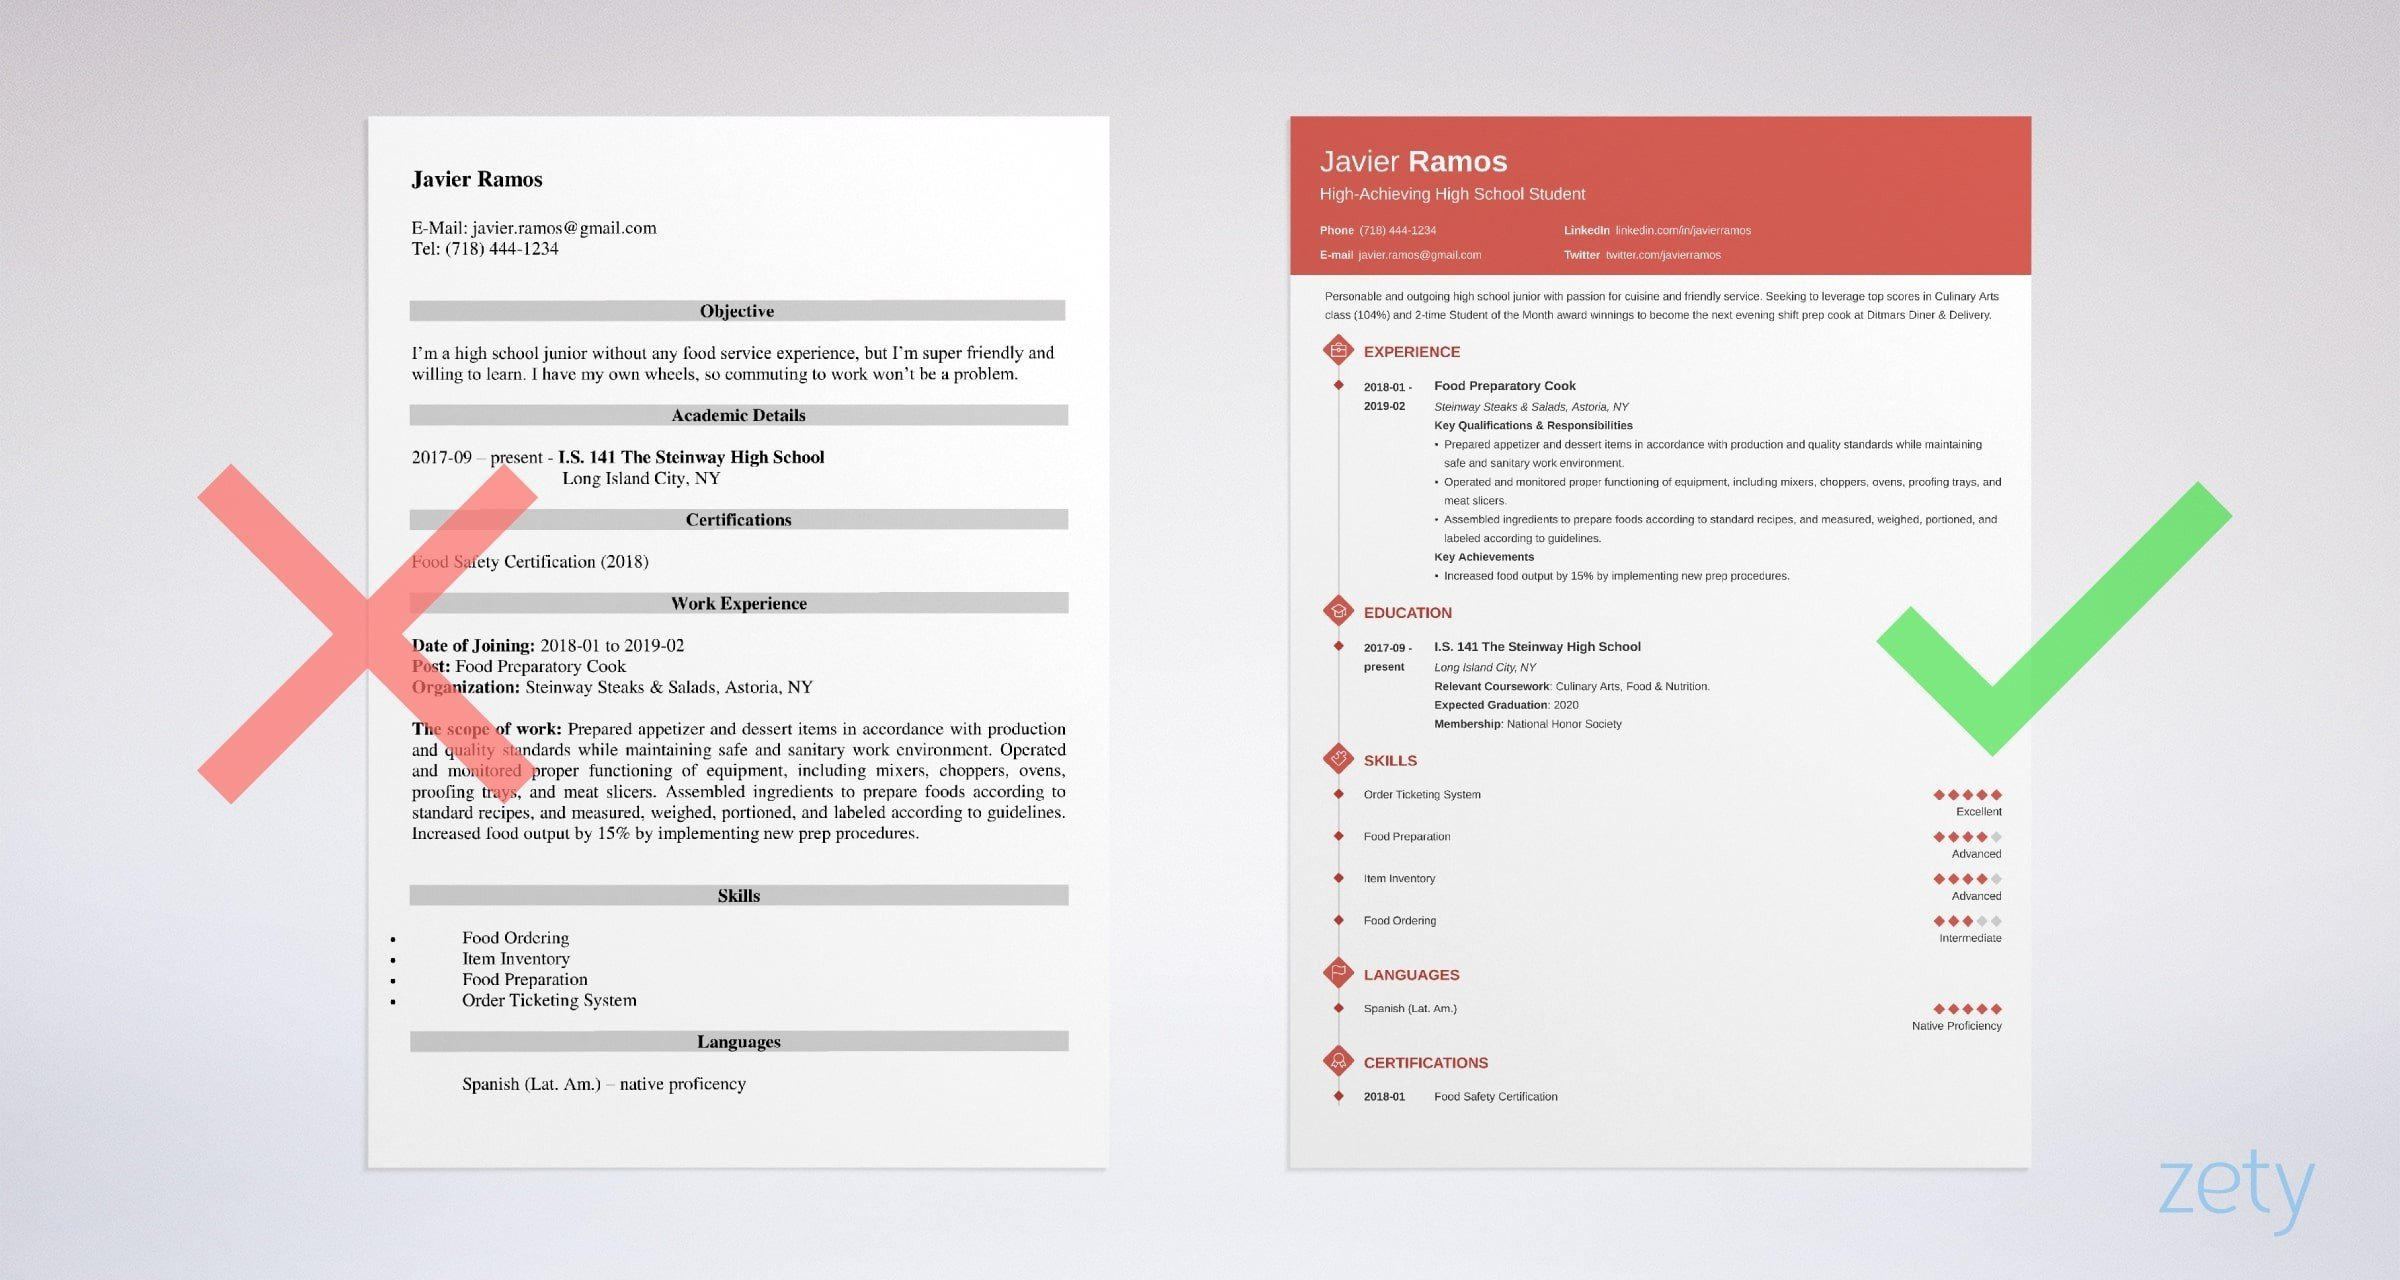 Student Resume Examples | High School Student Resume Sample Writing Guide 20